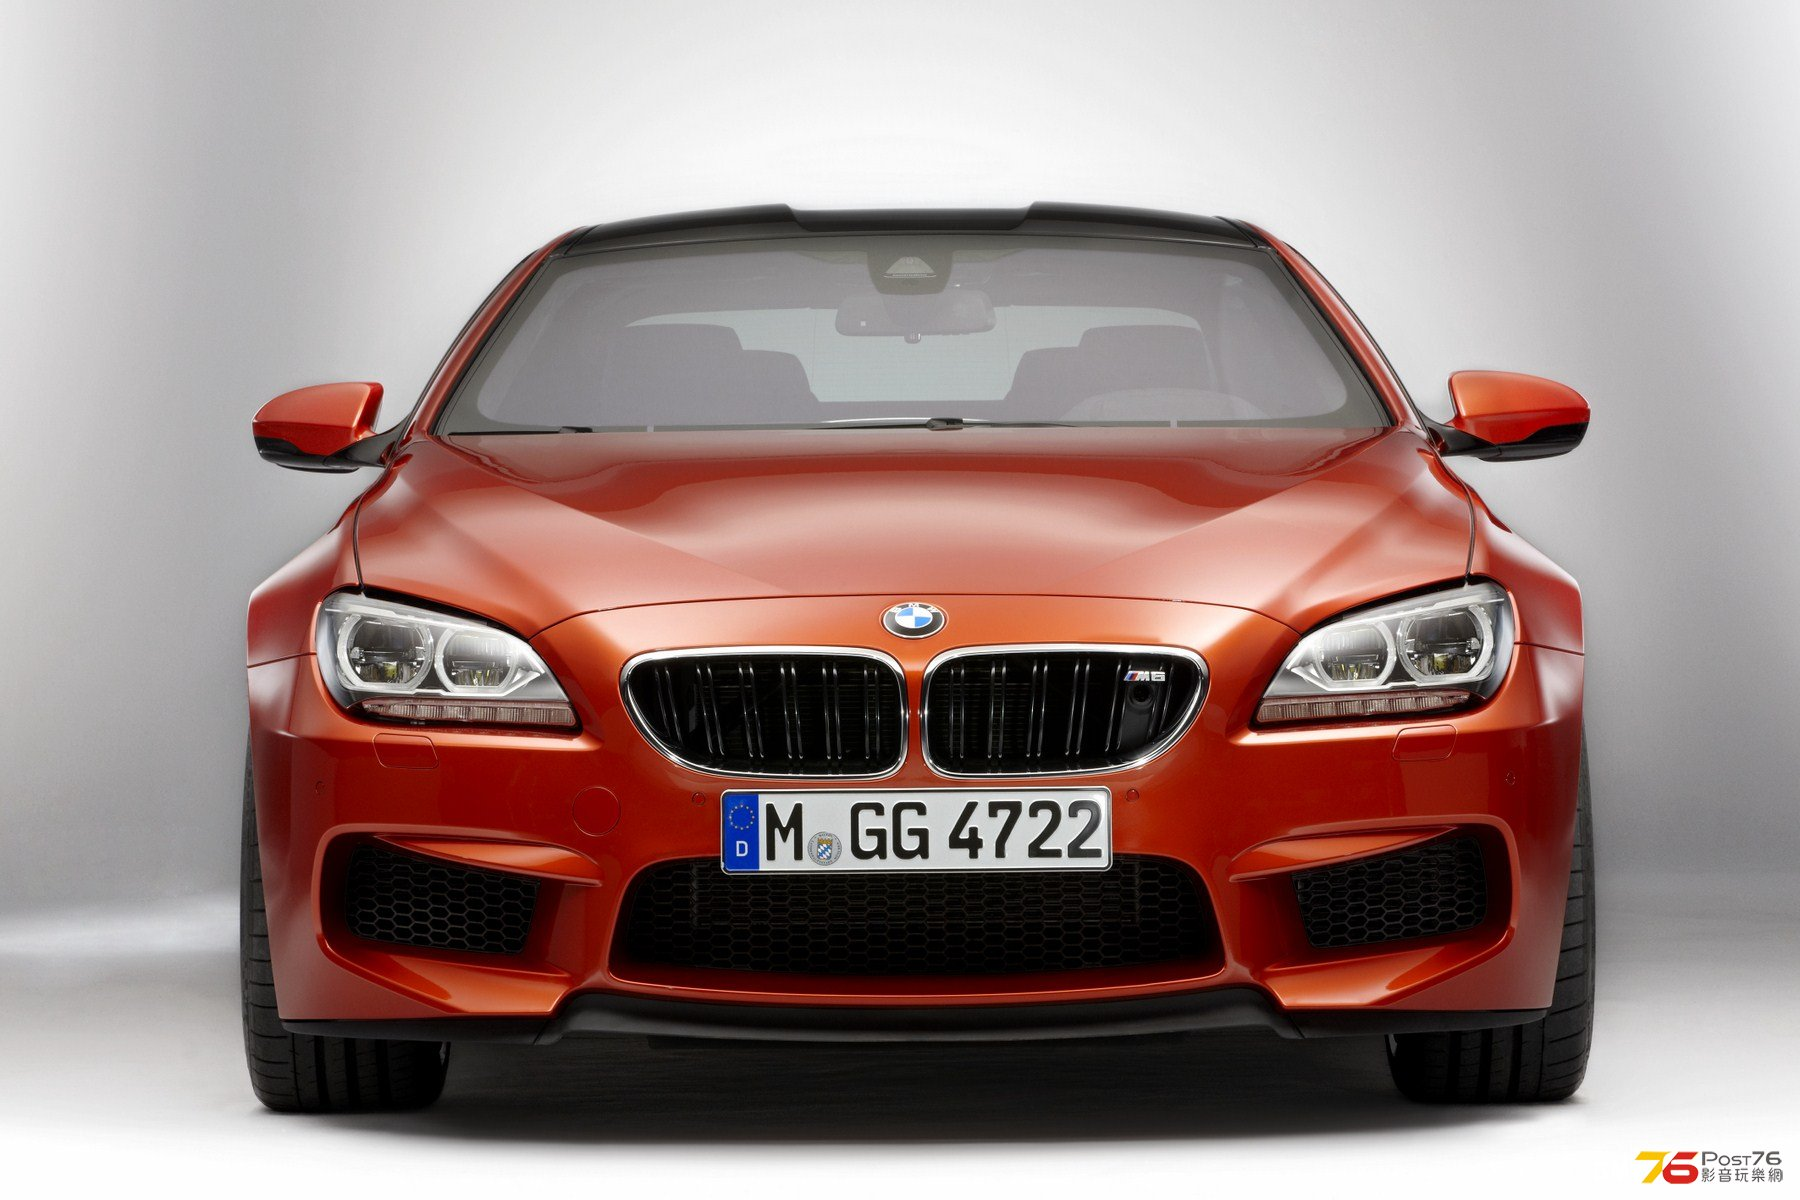 2013_BMW_M6_Coupe_01.jpg